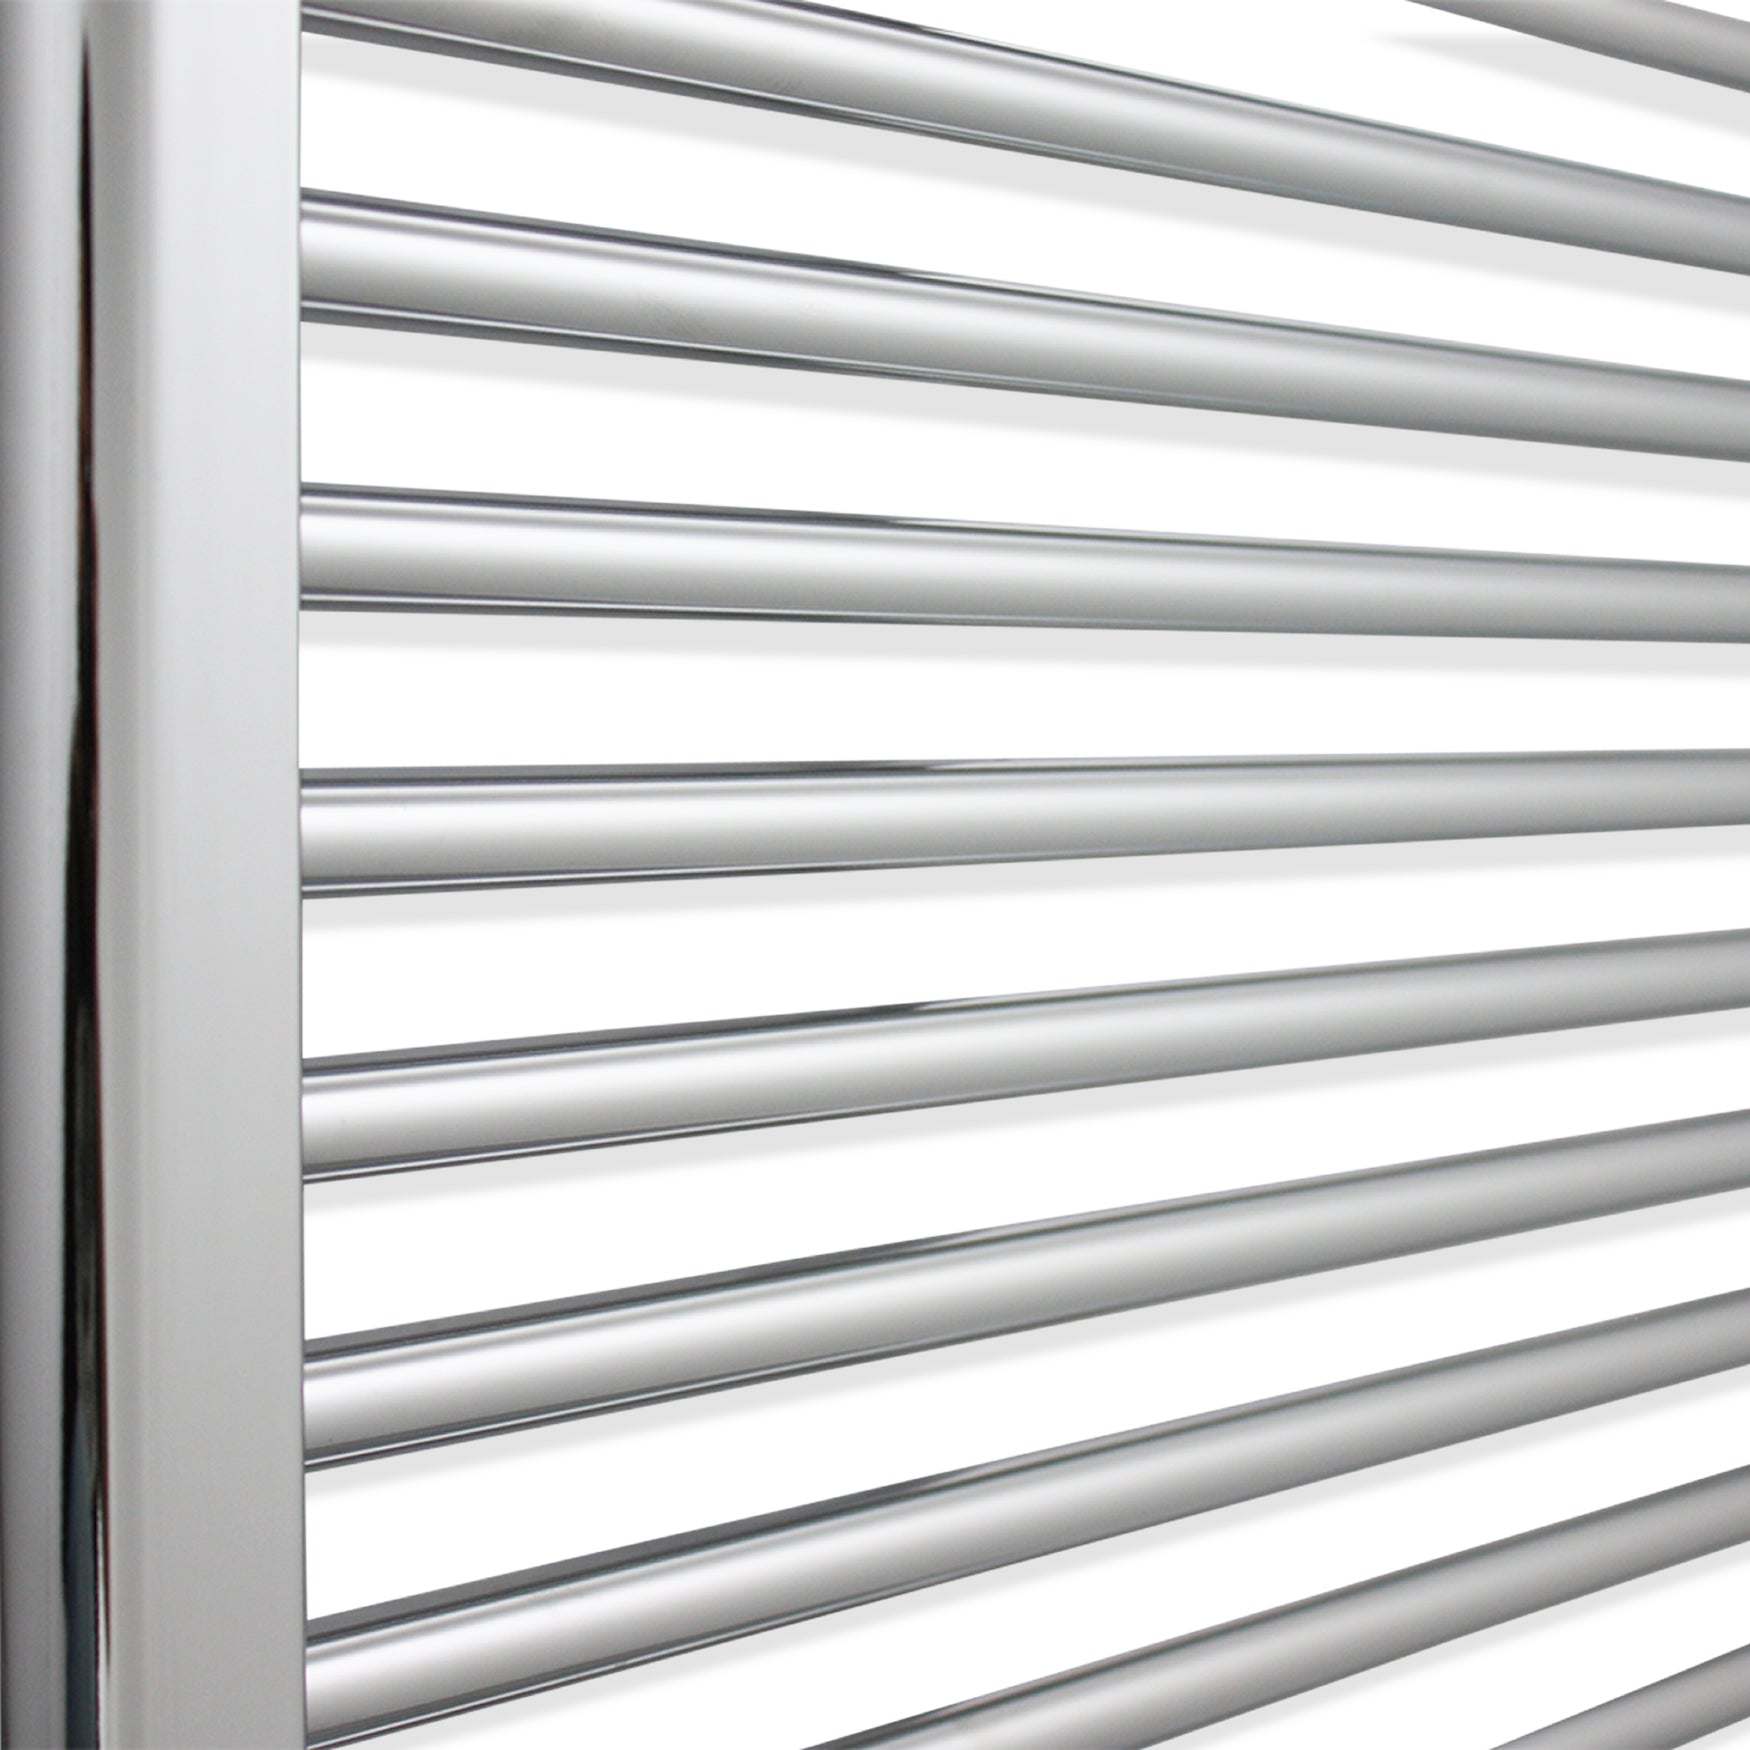 650mm Wide 600mm High Flat Chrome Heated Towel Rail Radiator HTR